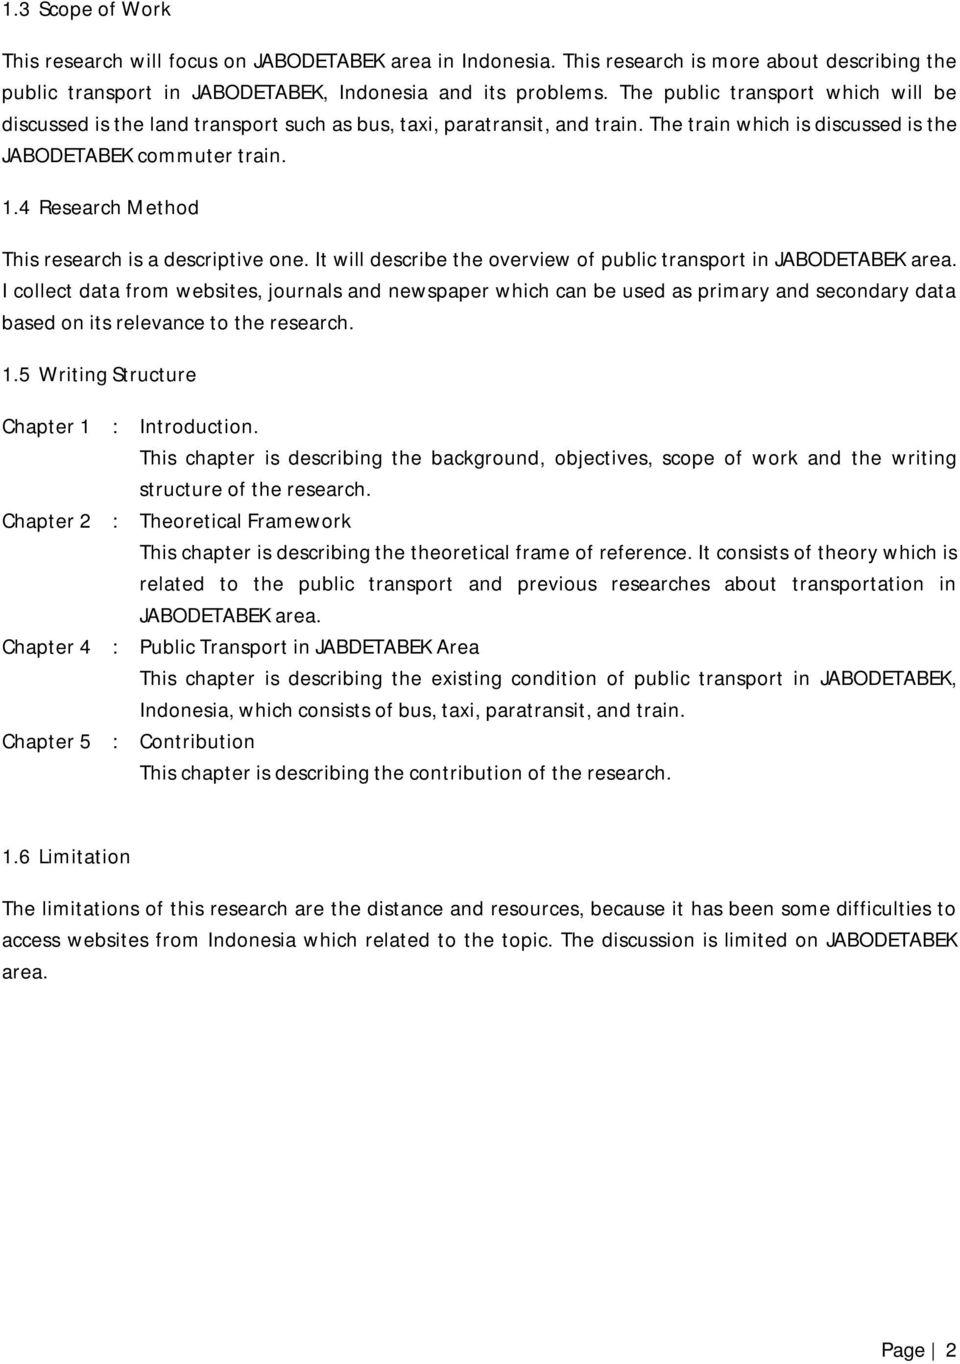 4 Research Method This research is a descriptive one. It will describe the overview of public transport in JABODETABEK area.